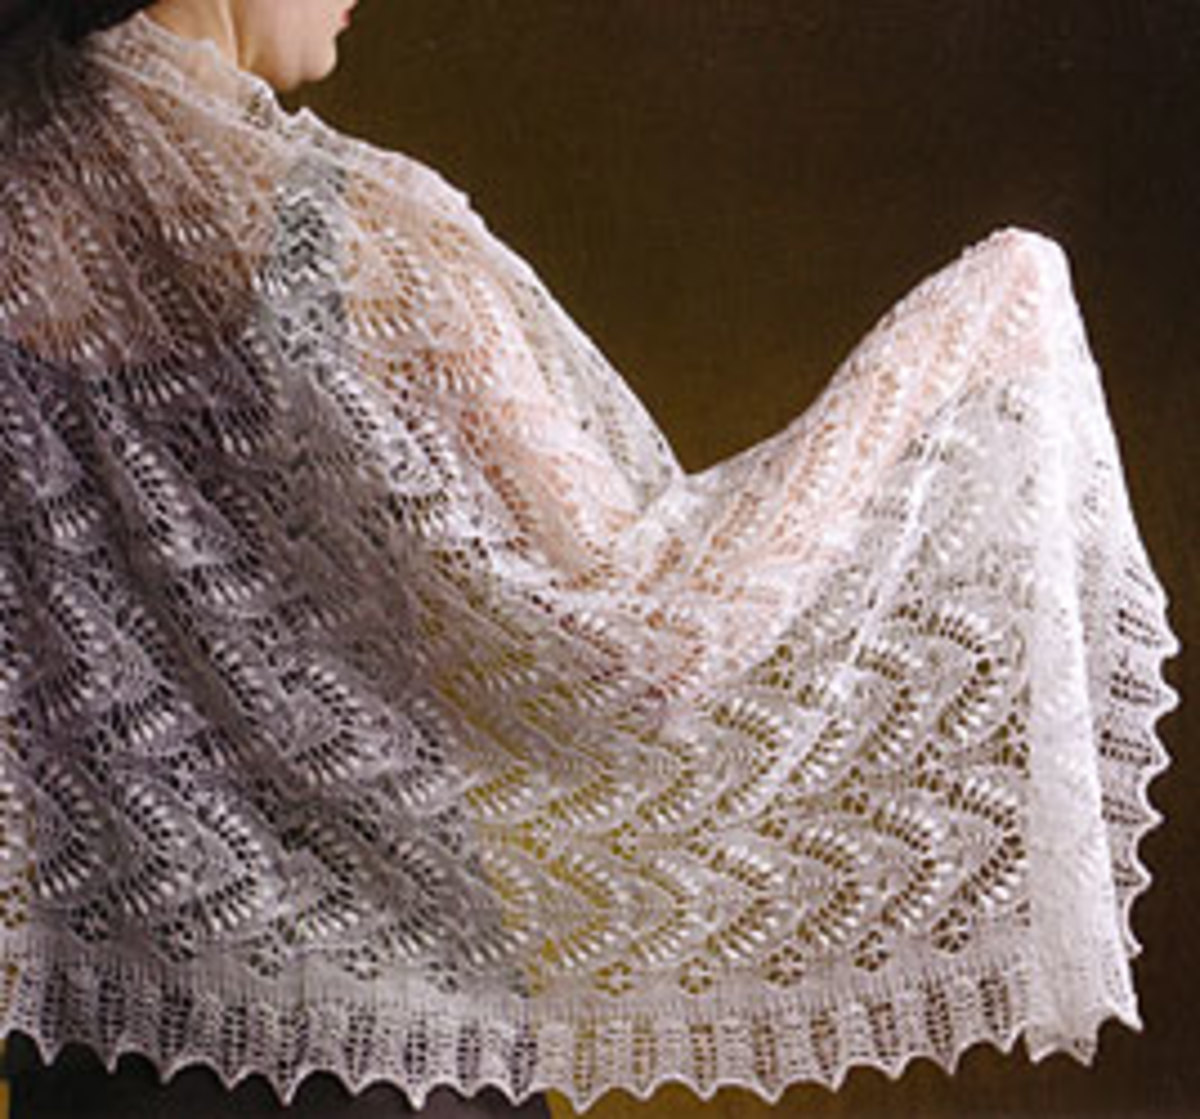 Lace Knitting Free Online Patterns | Knitted Lace With Instructions